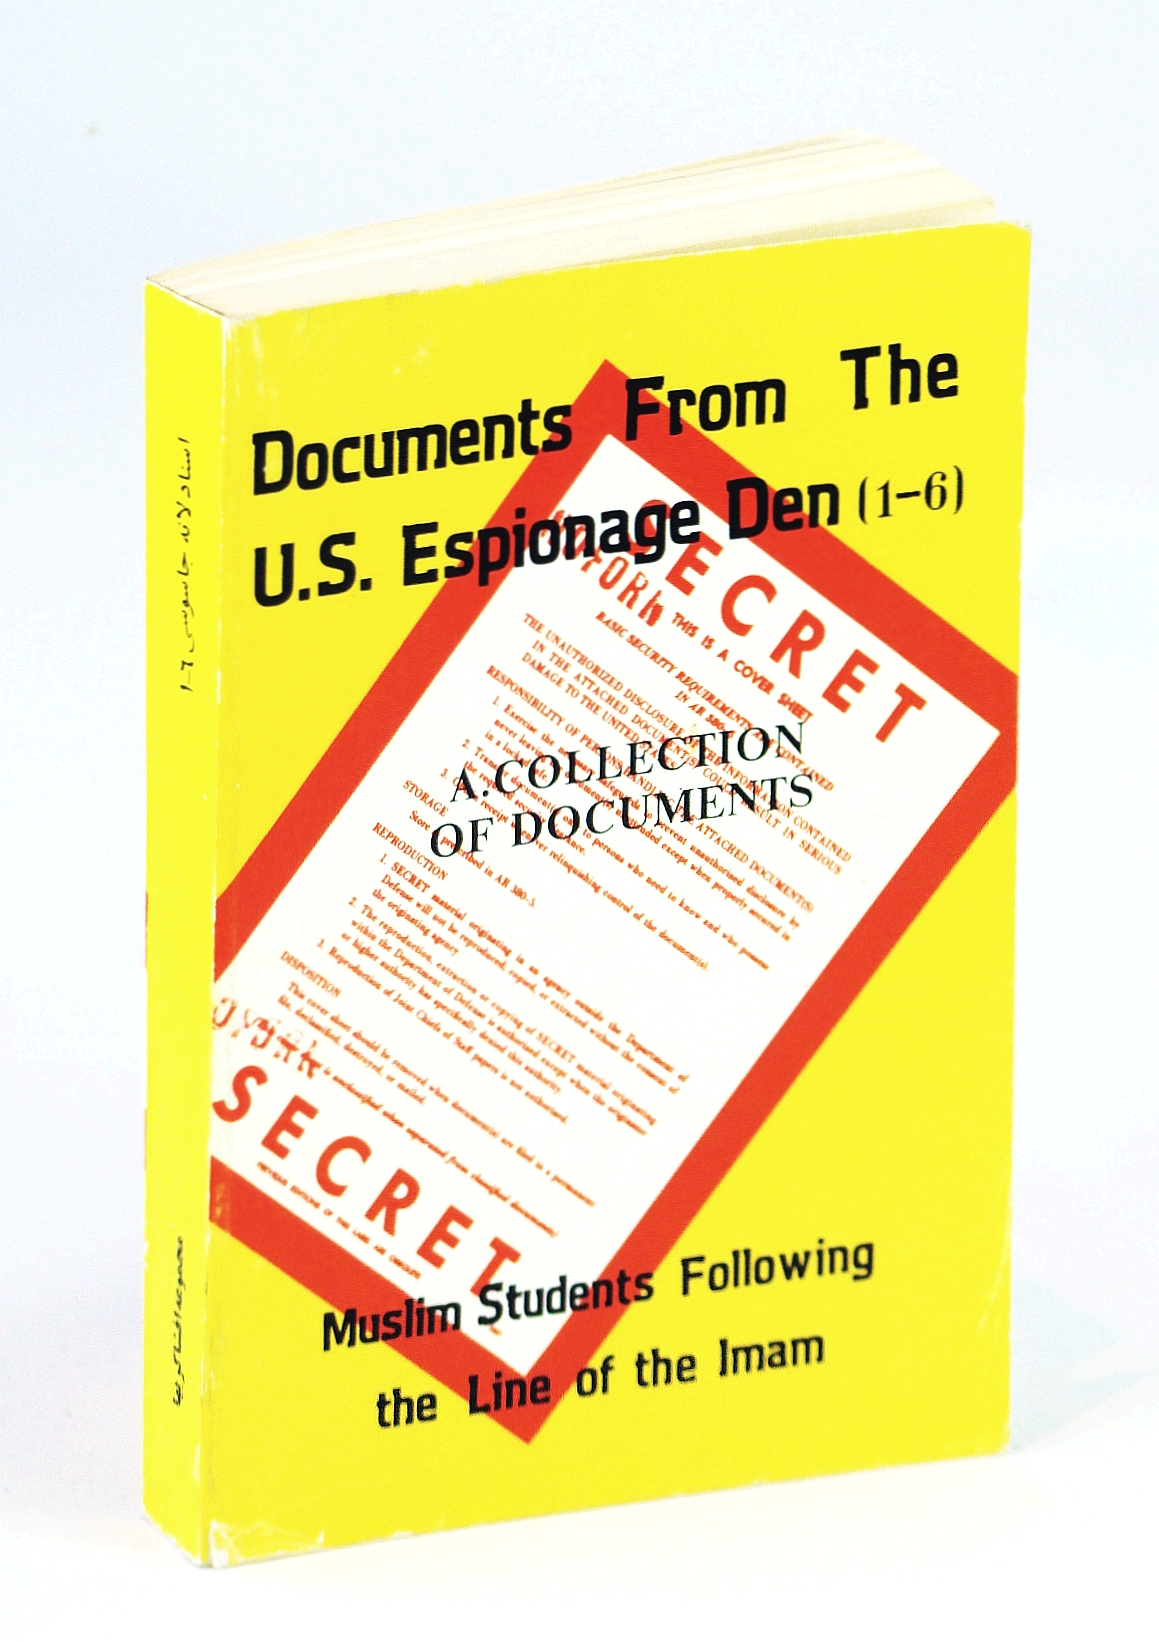 Image for Documents from the U.S. Espionage Den [1-6] - A Collection of Documents